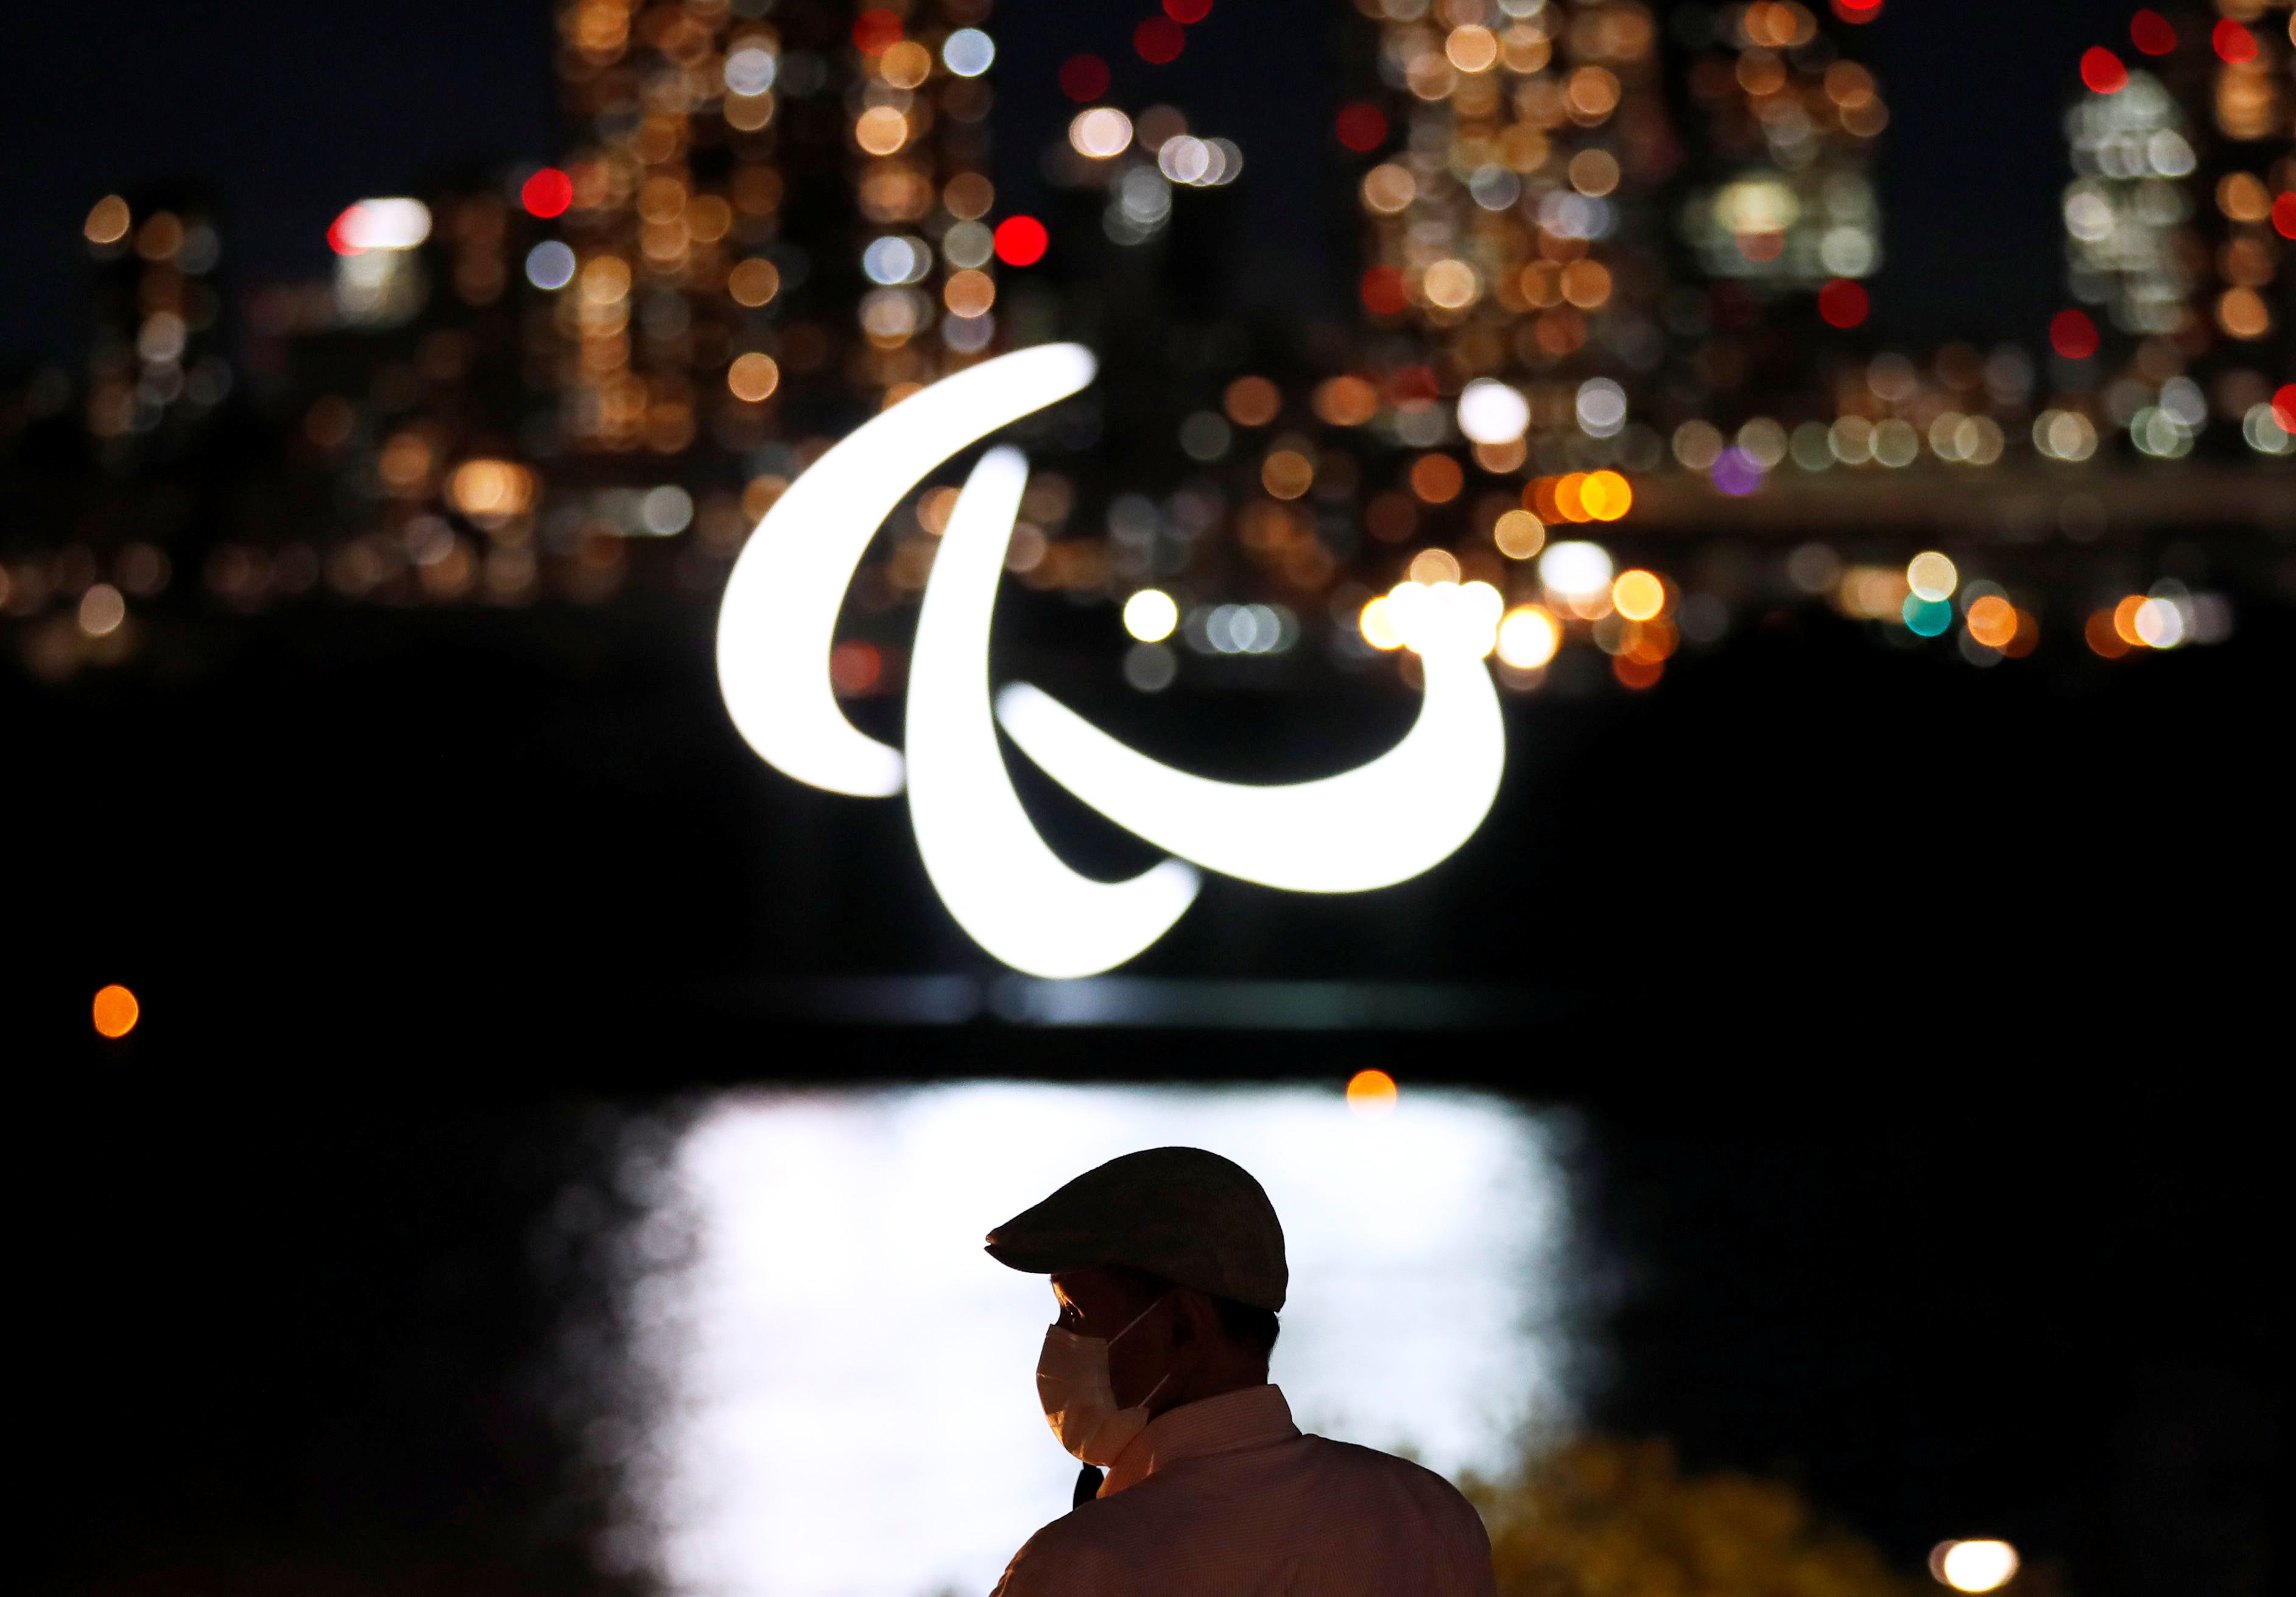 A visitor wearing a protective mask looks at an illuminated Paralympic symbol at the waterfront area of Odaiba Marine Park, ahead of the opening ceremony of the 2020 Tokyo Paralympic Games that have been postponed to 2021 due to the COVID-19 pandemic, in Tokyo, Japan August 20, 2021  REUTERS/Issei Kato